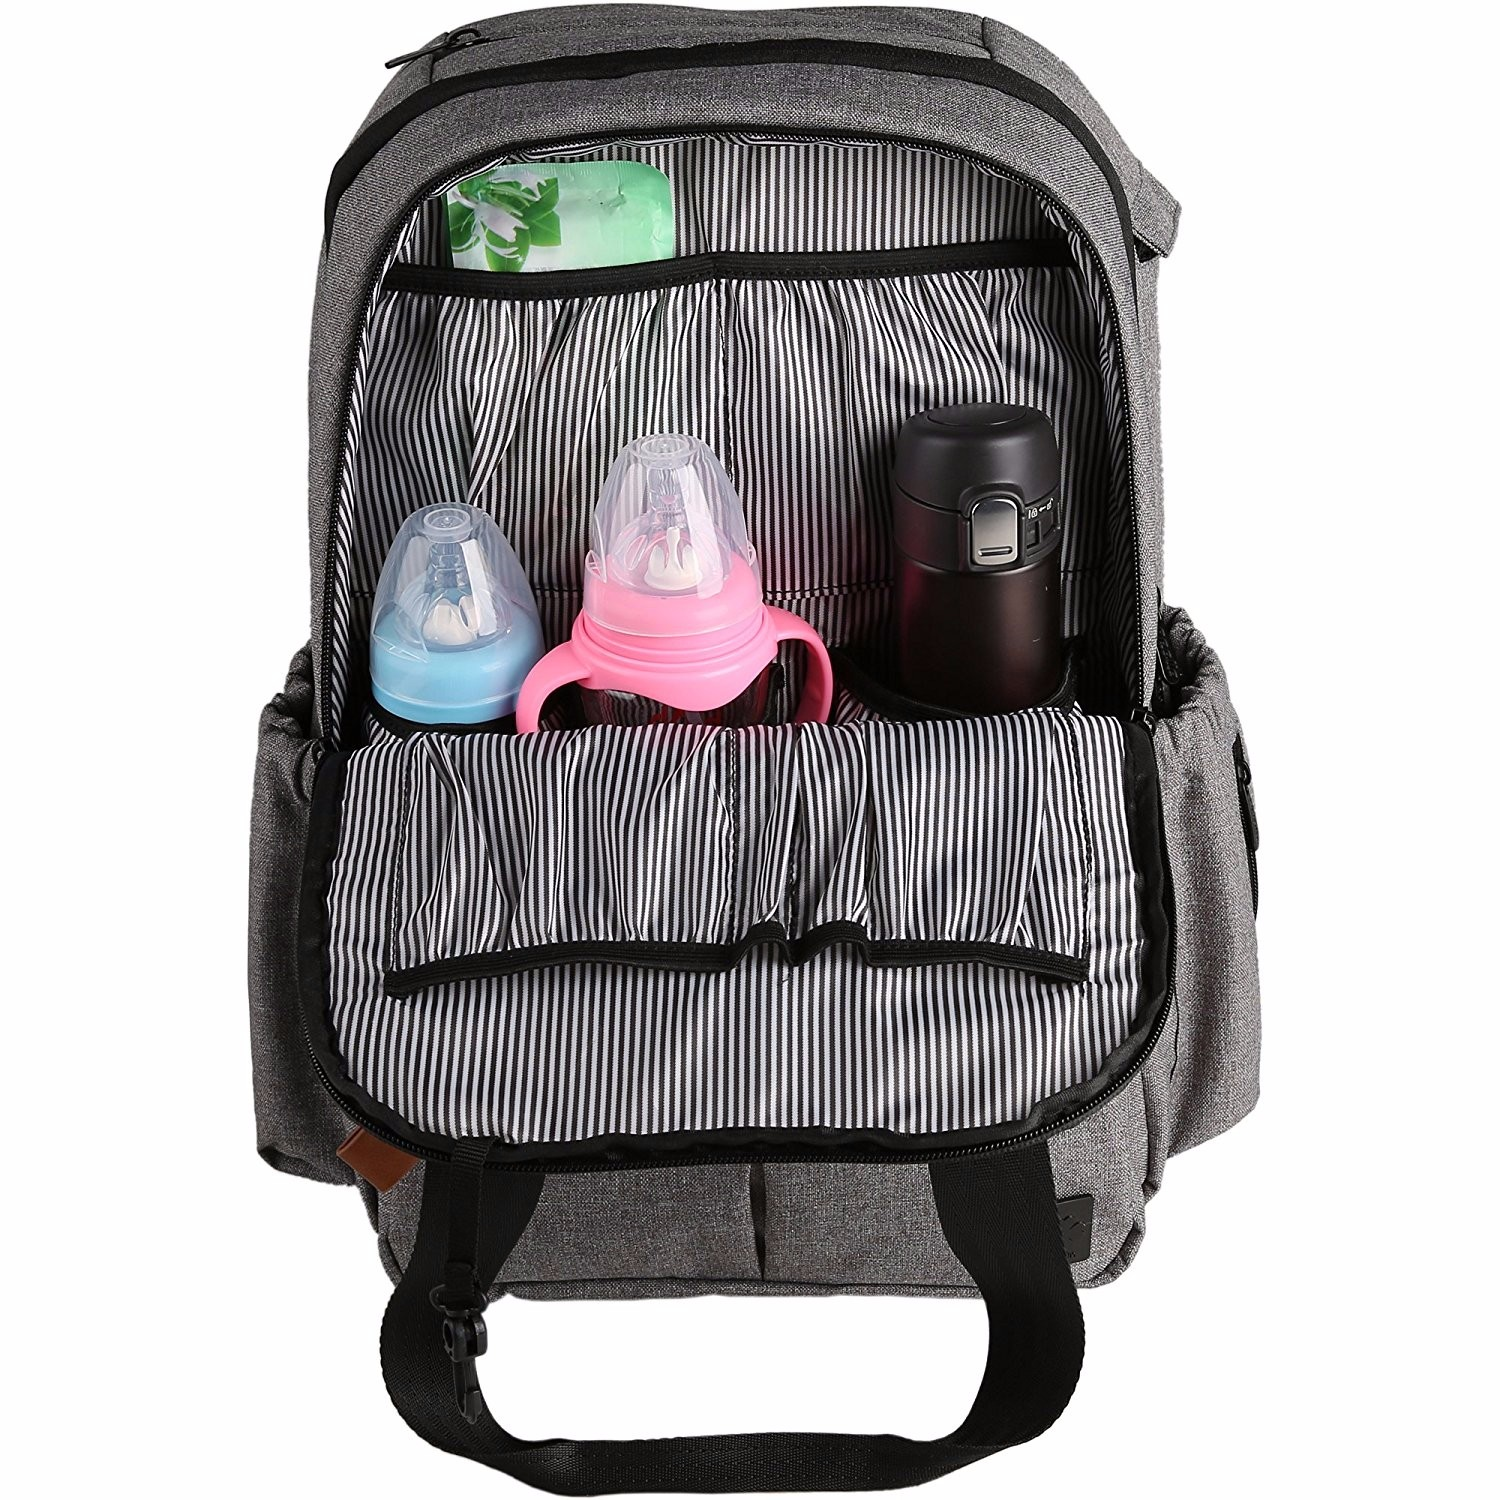 Diaper Backpack For Mom Manufacturers, Diaper Backpack For Mom Factory, Supply Diaper Backpack For Mom